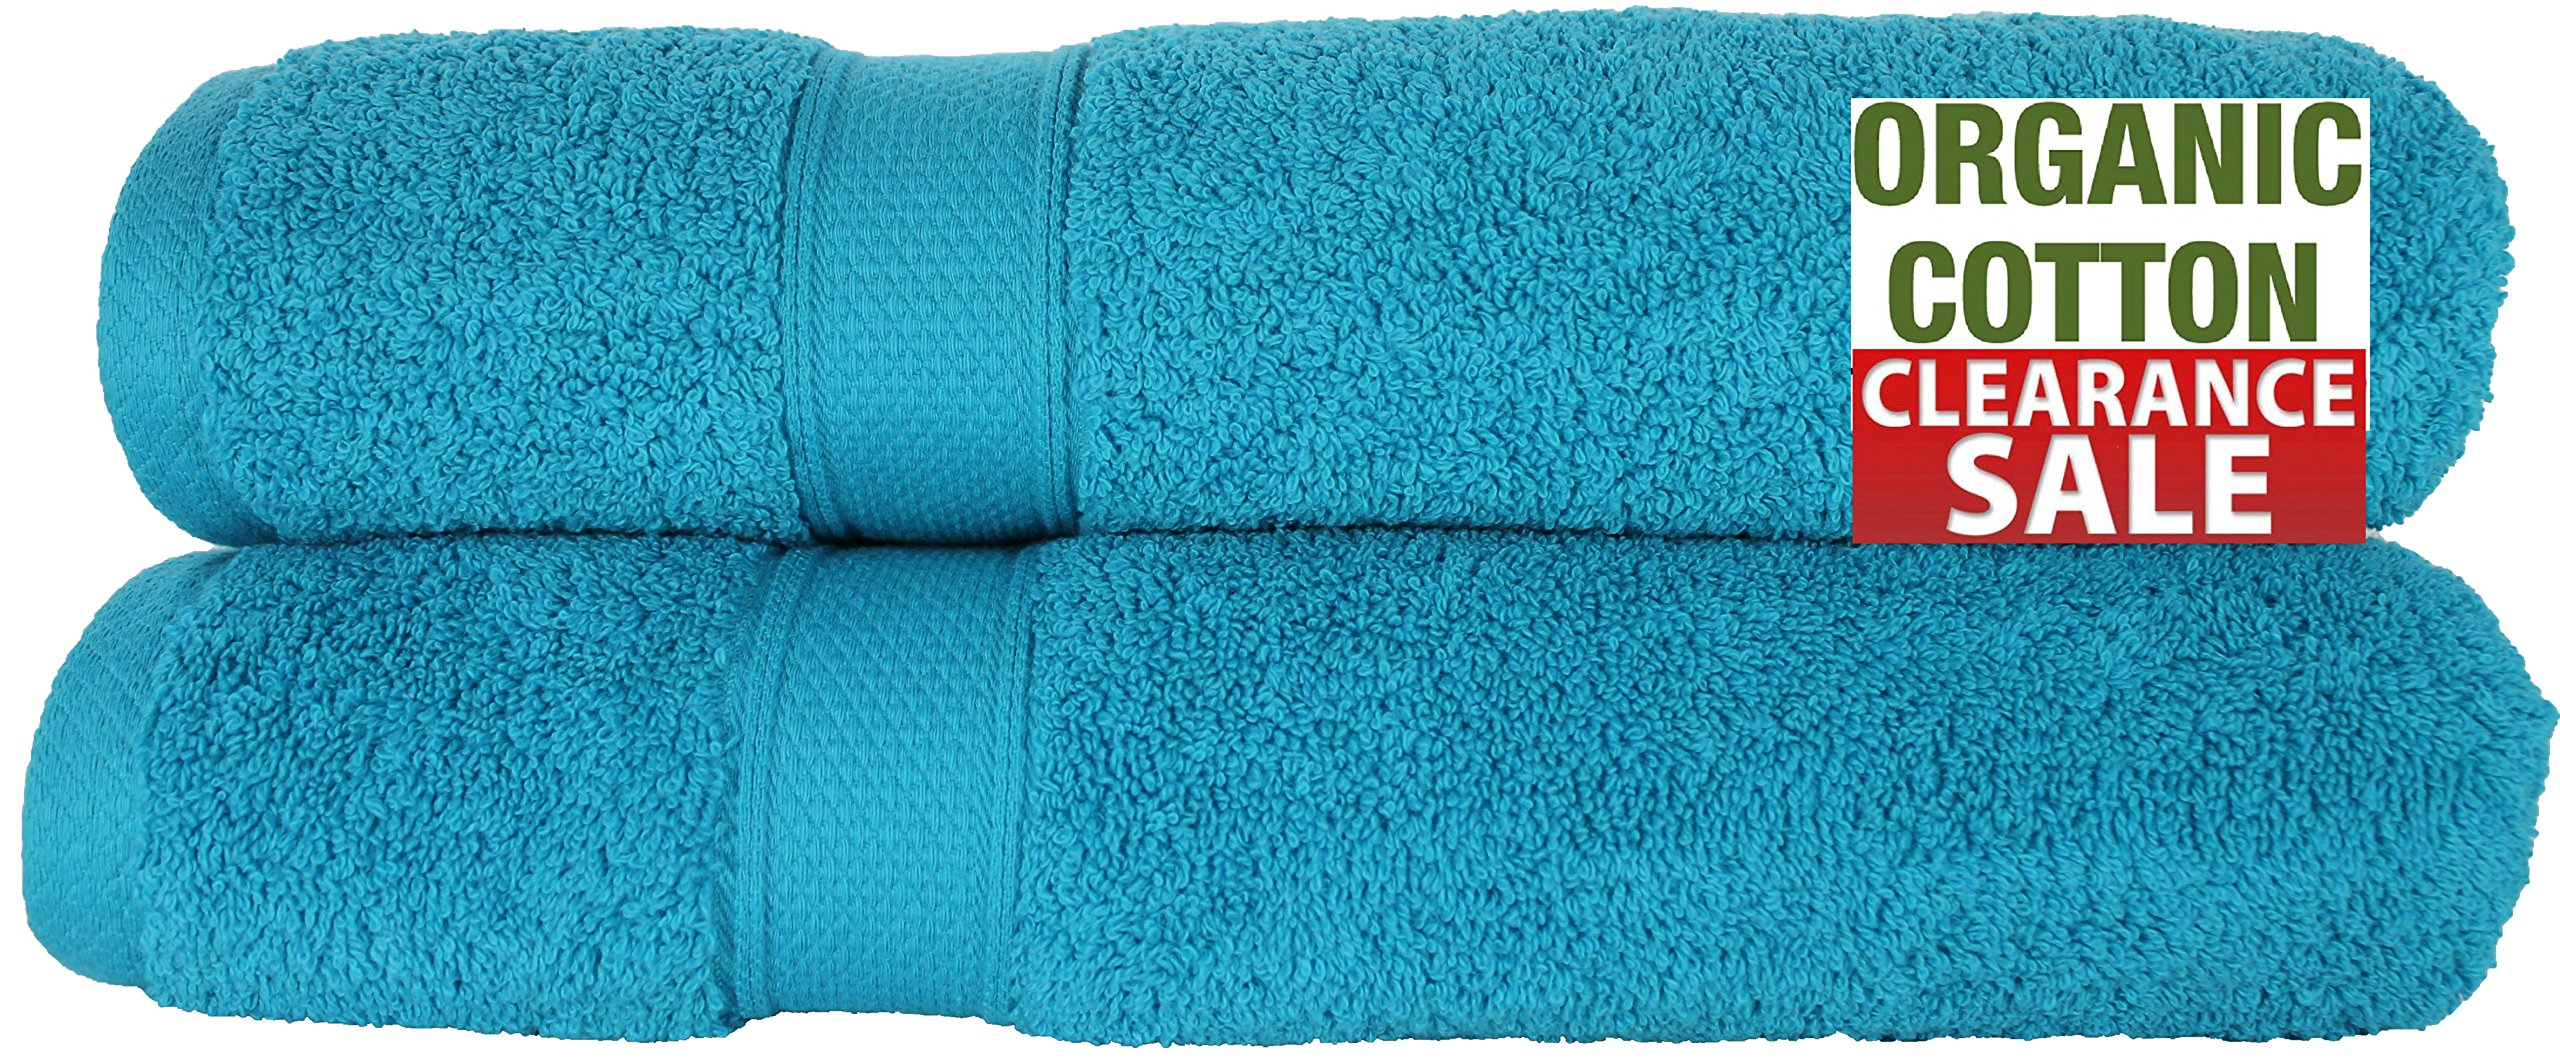 100% Pure Organic Luxury Hotel & Spa,Premium Quality. 700 GSM Extra Large towel Last long Super Soft, Plush and Ultra Absorbent Quick dry 35 x 70-Inch (Bath Sheet- Set of 2, Caribbean Aqua)